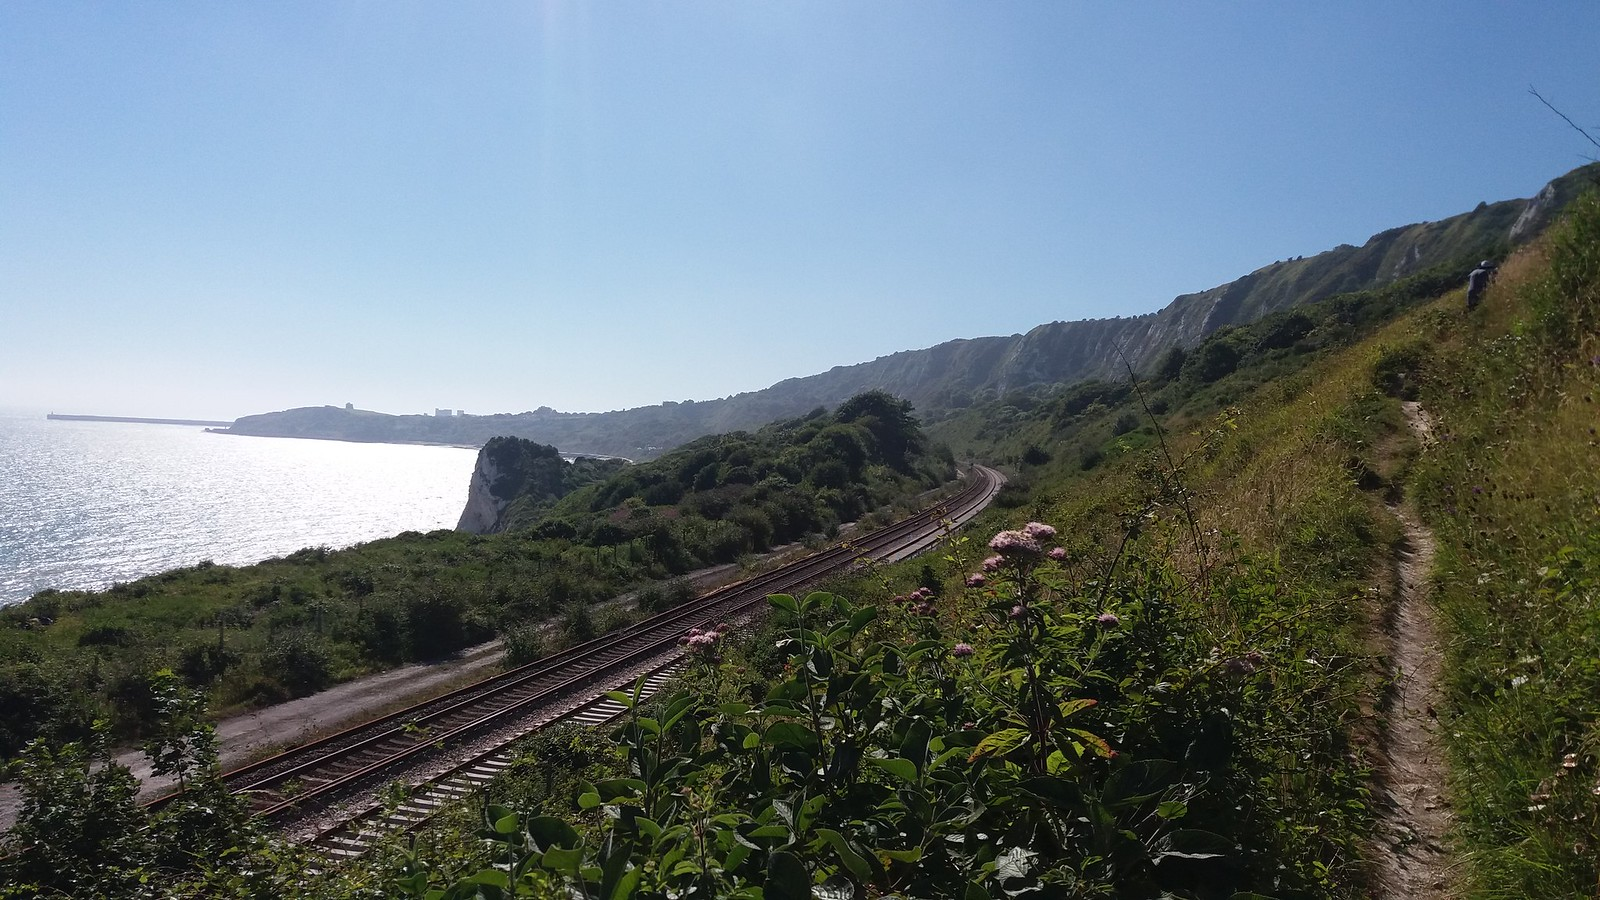 20160812_153305 Folkestone Warren - Rail Line from path up to Cliff Top cafe